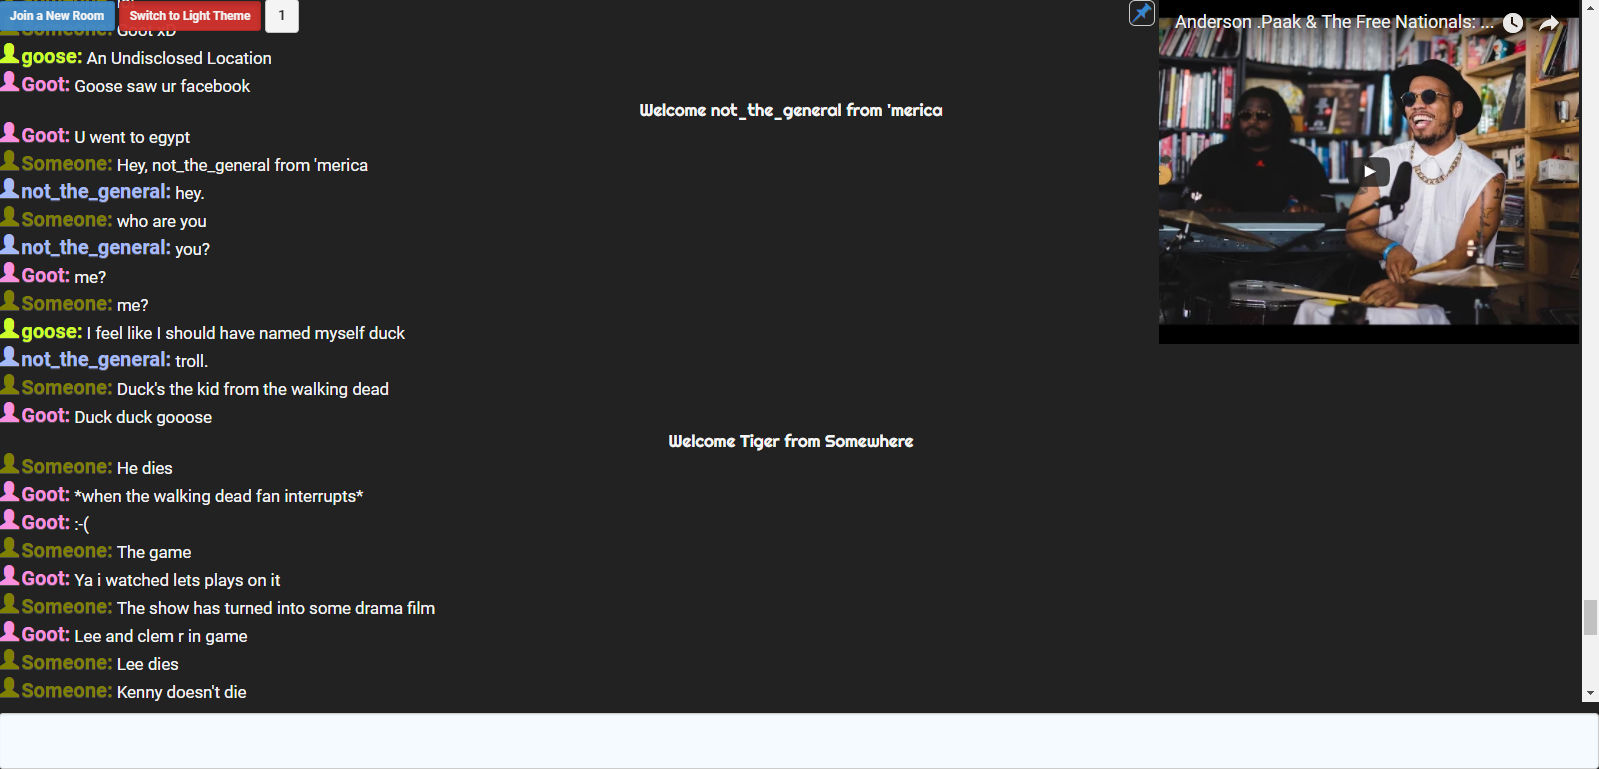 smallcrowd.us